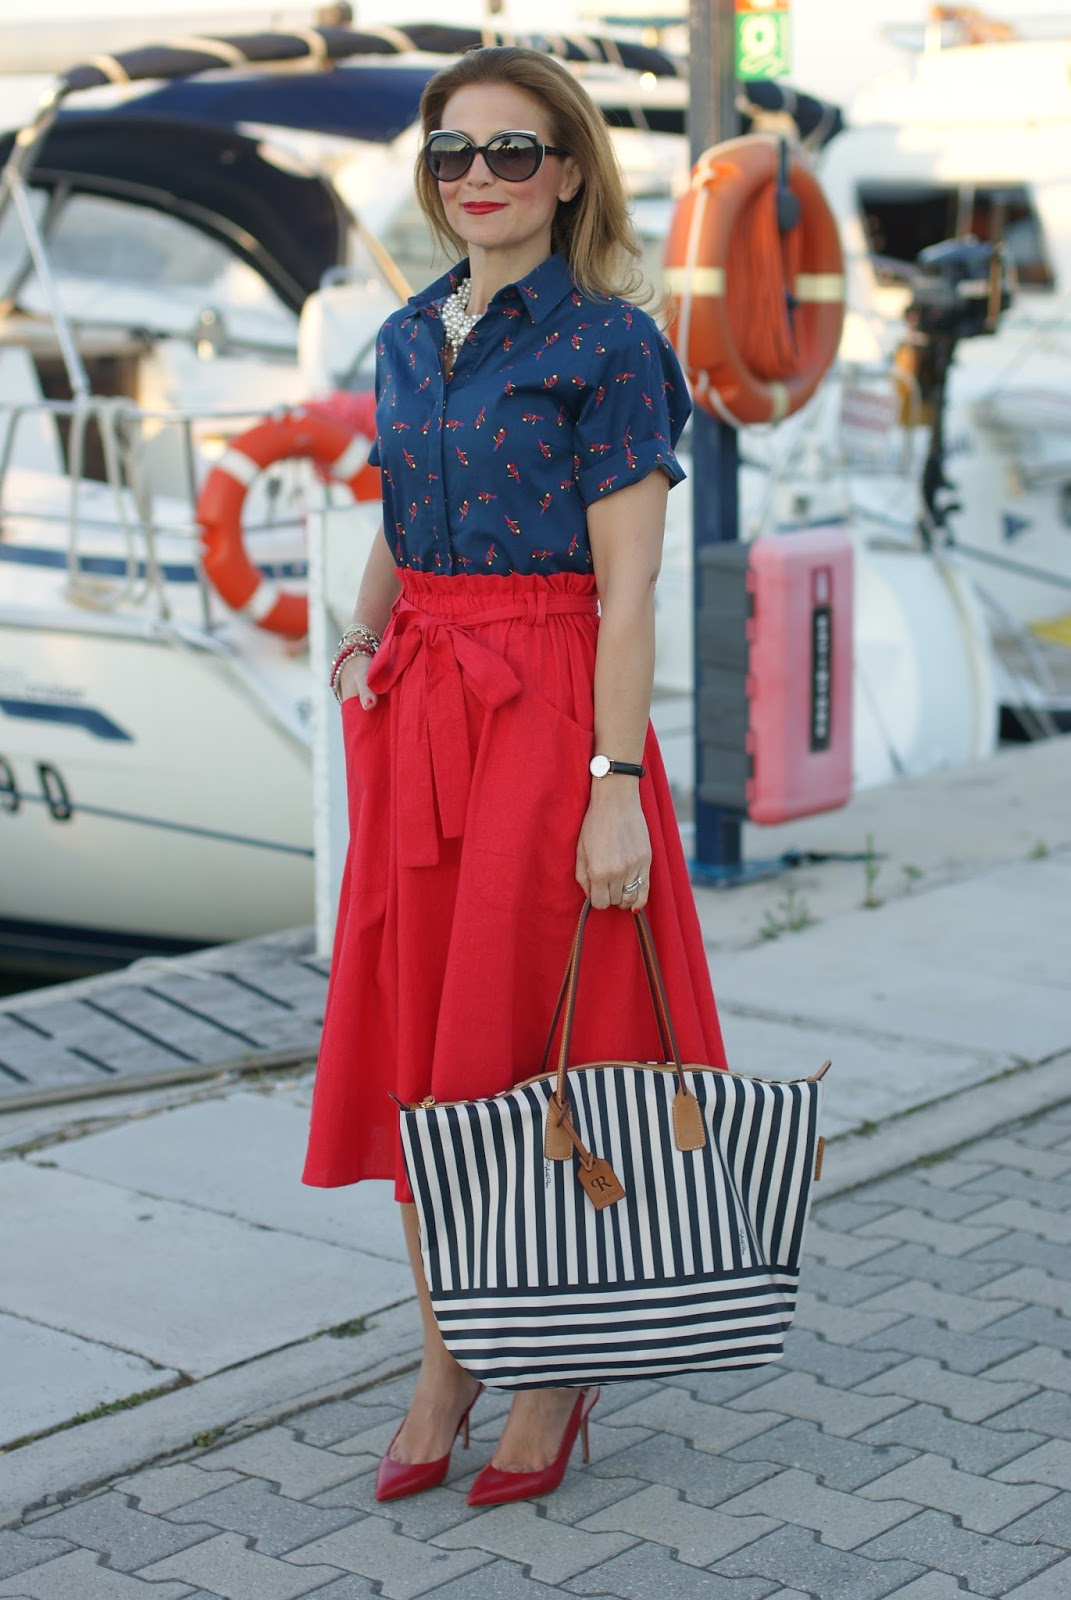 Roberta Pieri robertina collection, a striped tote, holiday navy style with a red Asos midi skirt and Le Silla shoes on Fashion and Cookies fashion blog, fashion blogger style